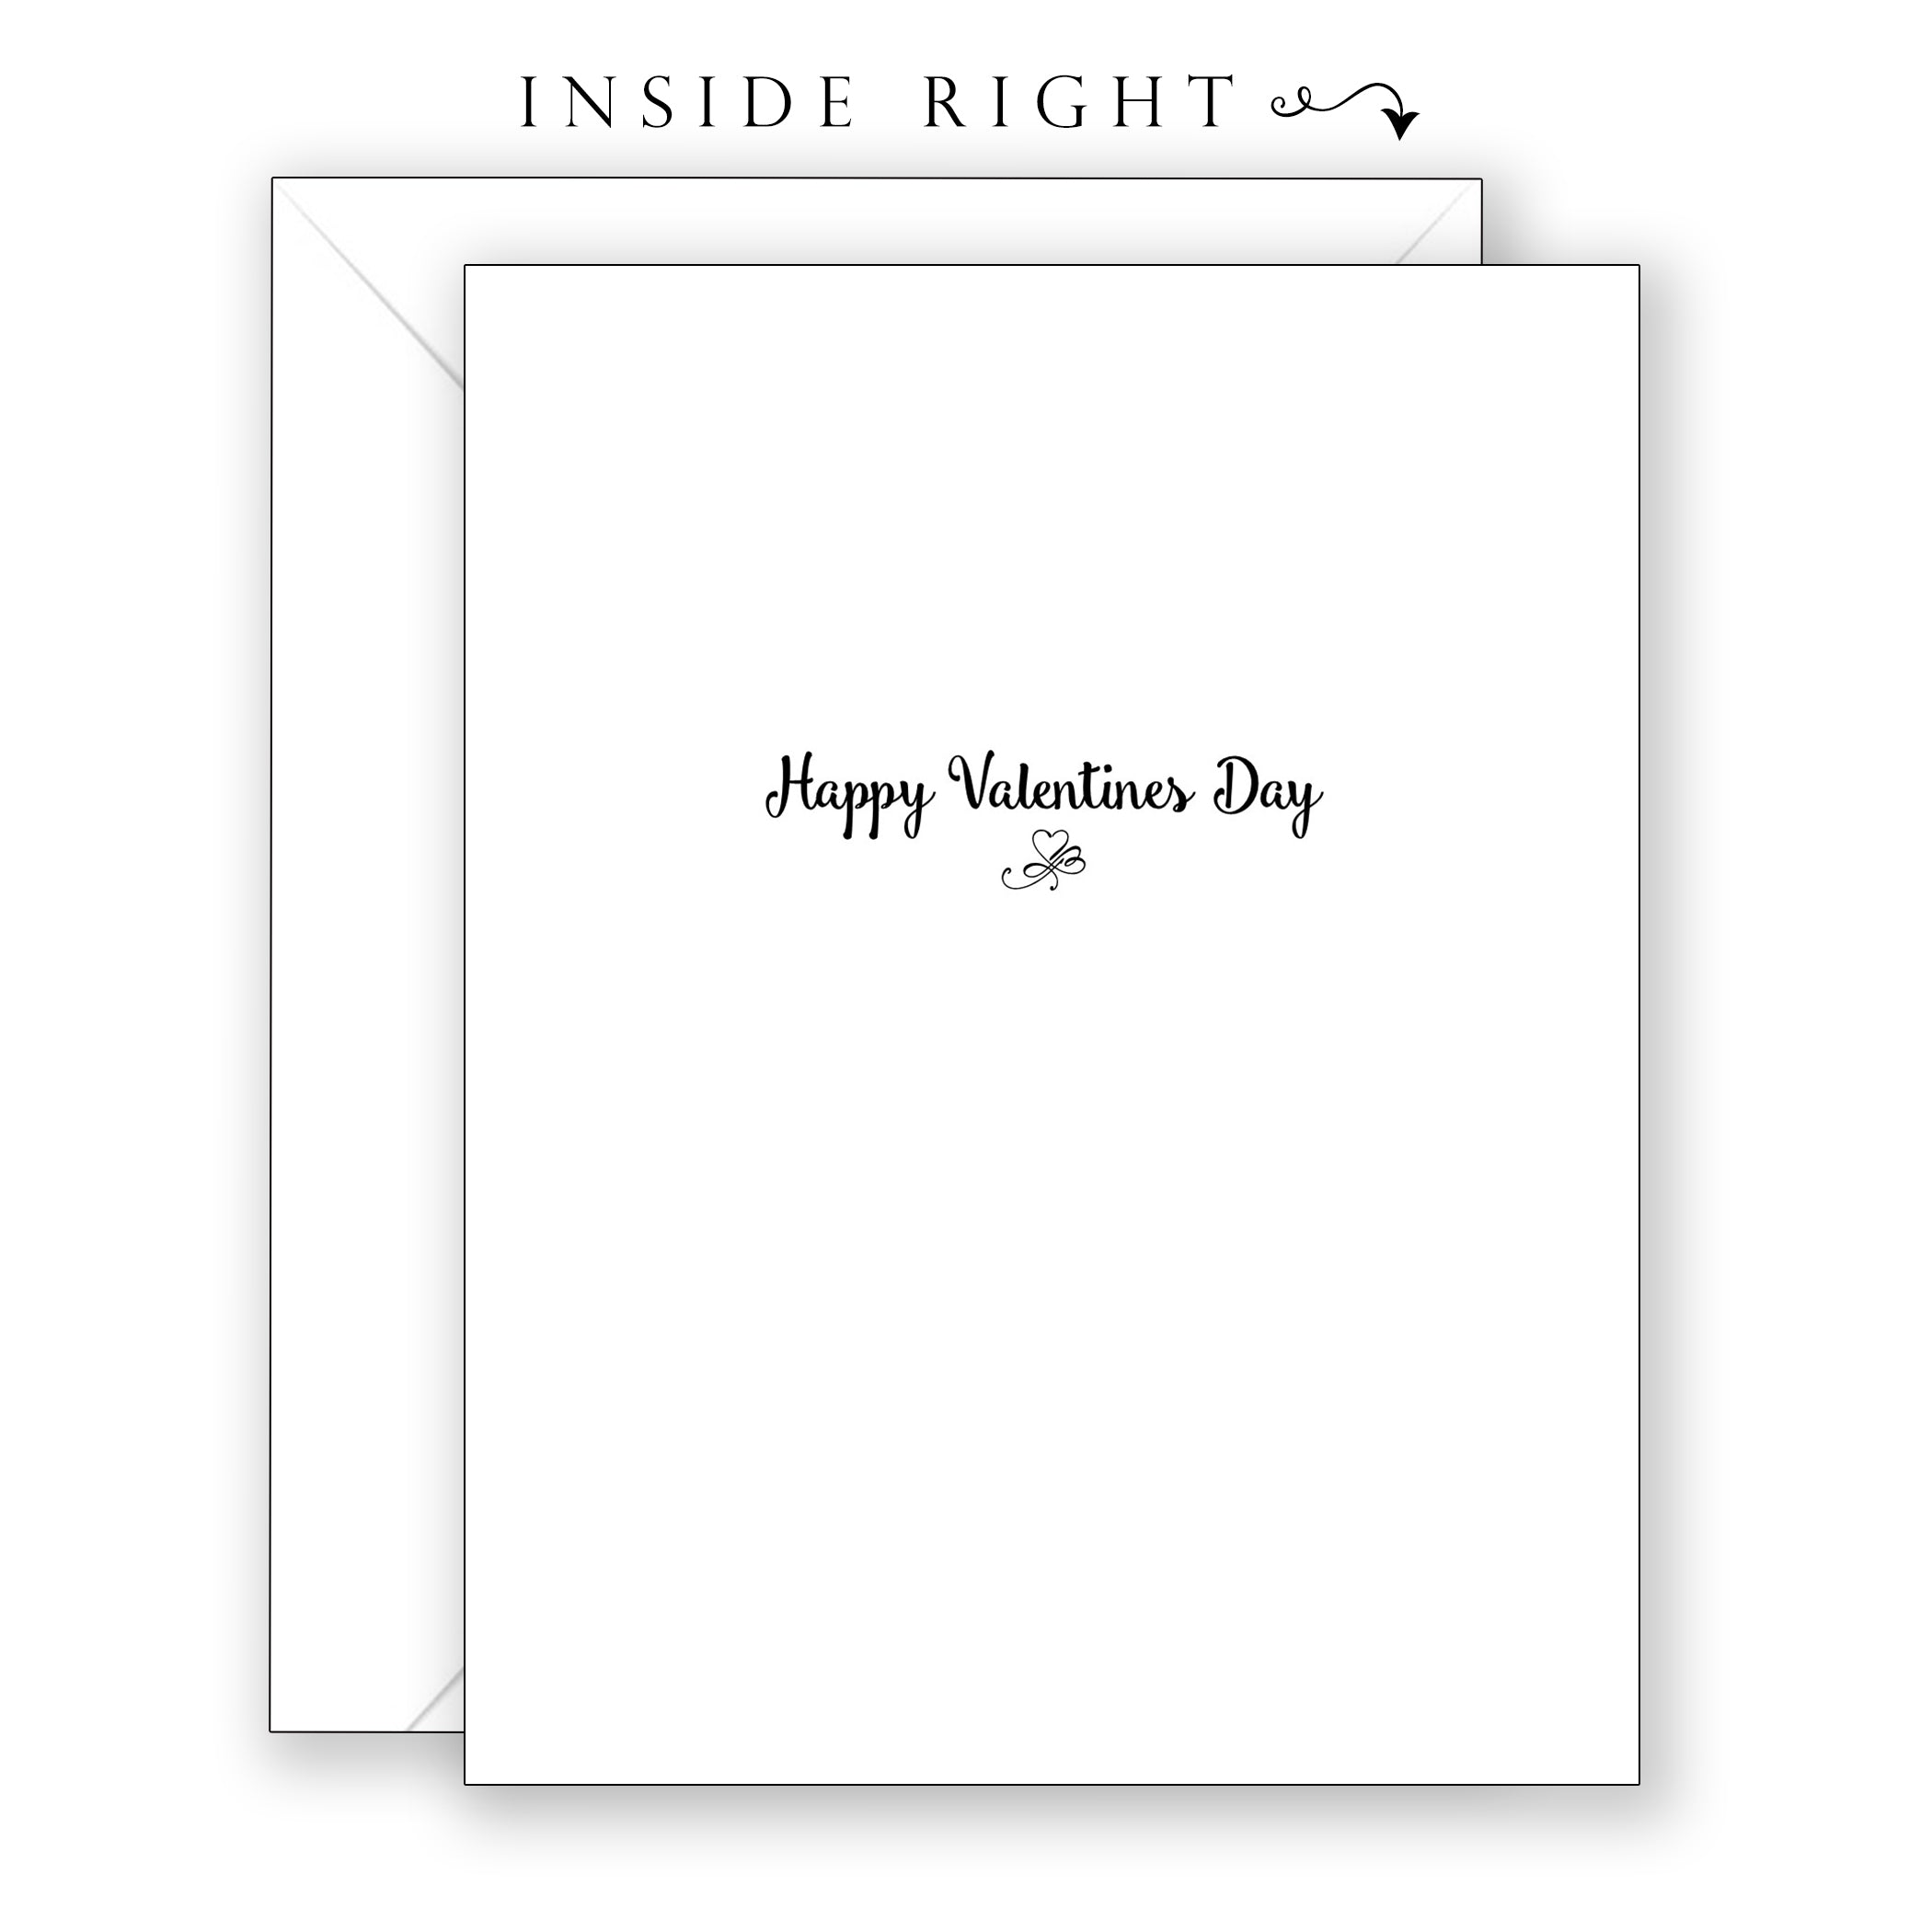 Happy Spring - Valentines Day Card